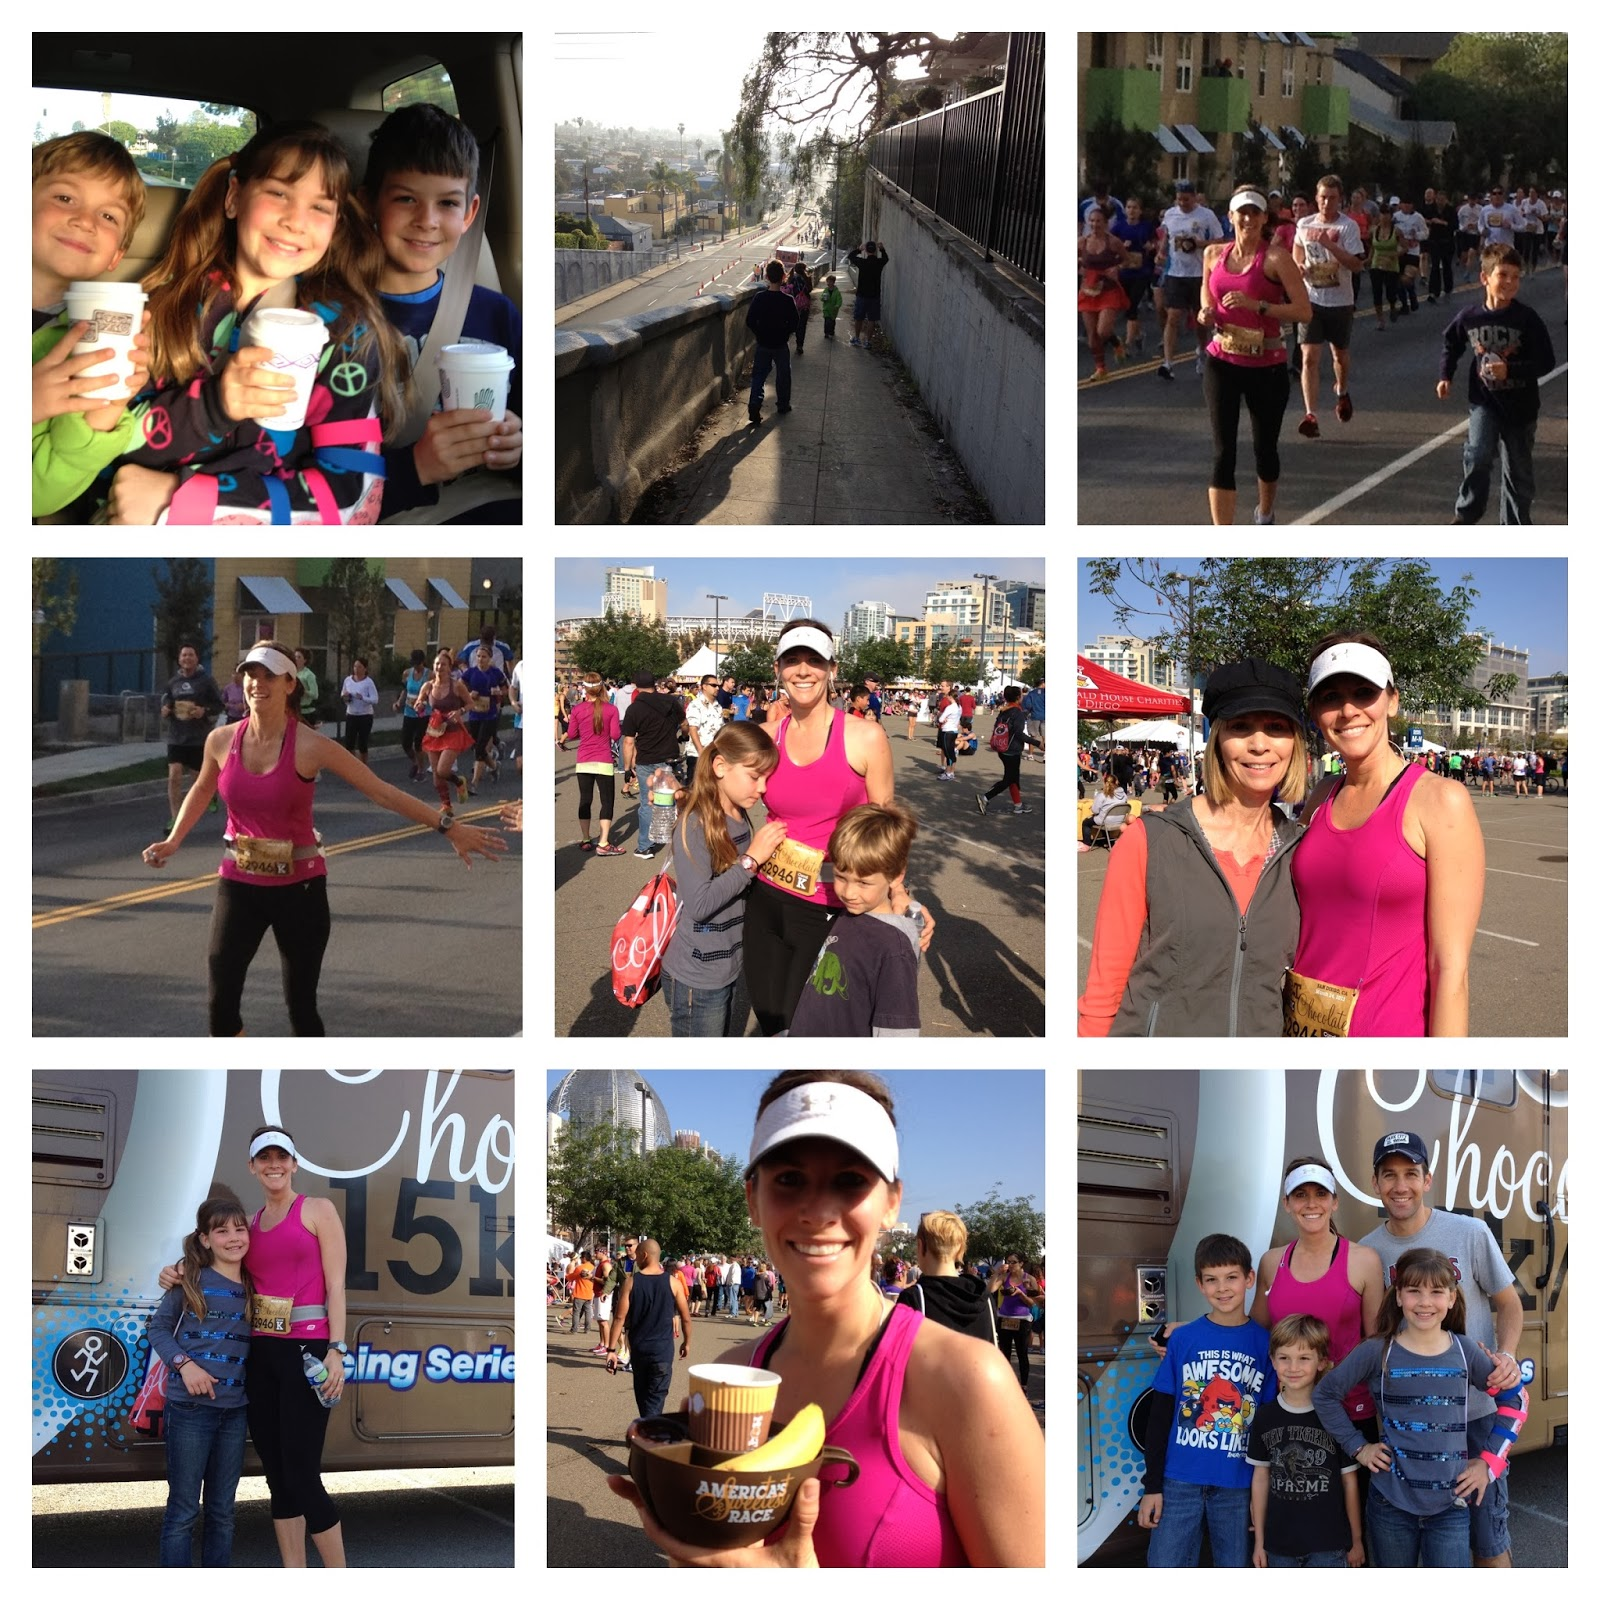 Hot Chocolate Run, www.HealthyFitFocused.com